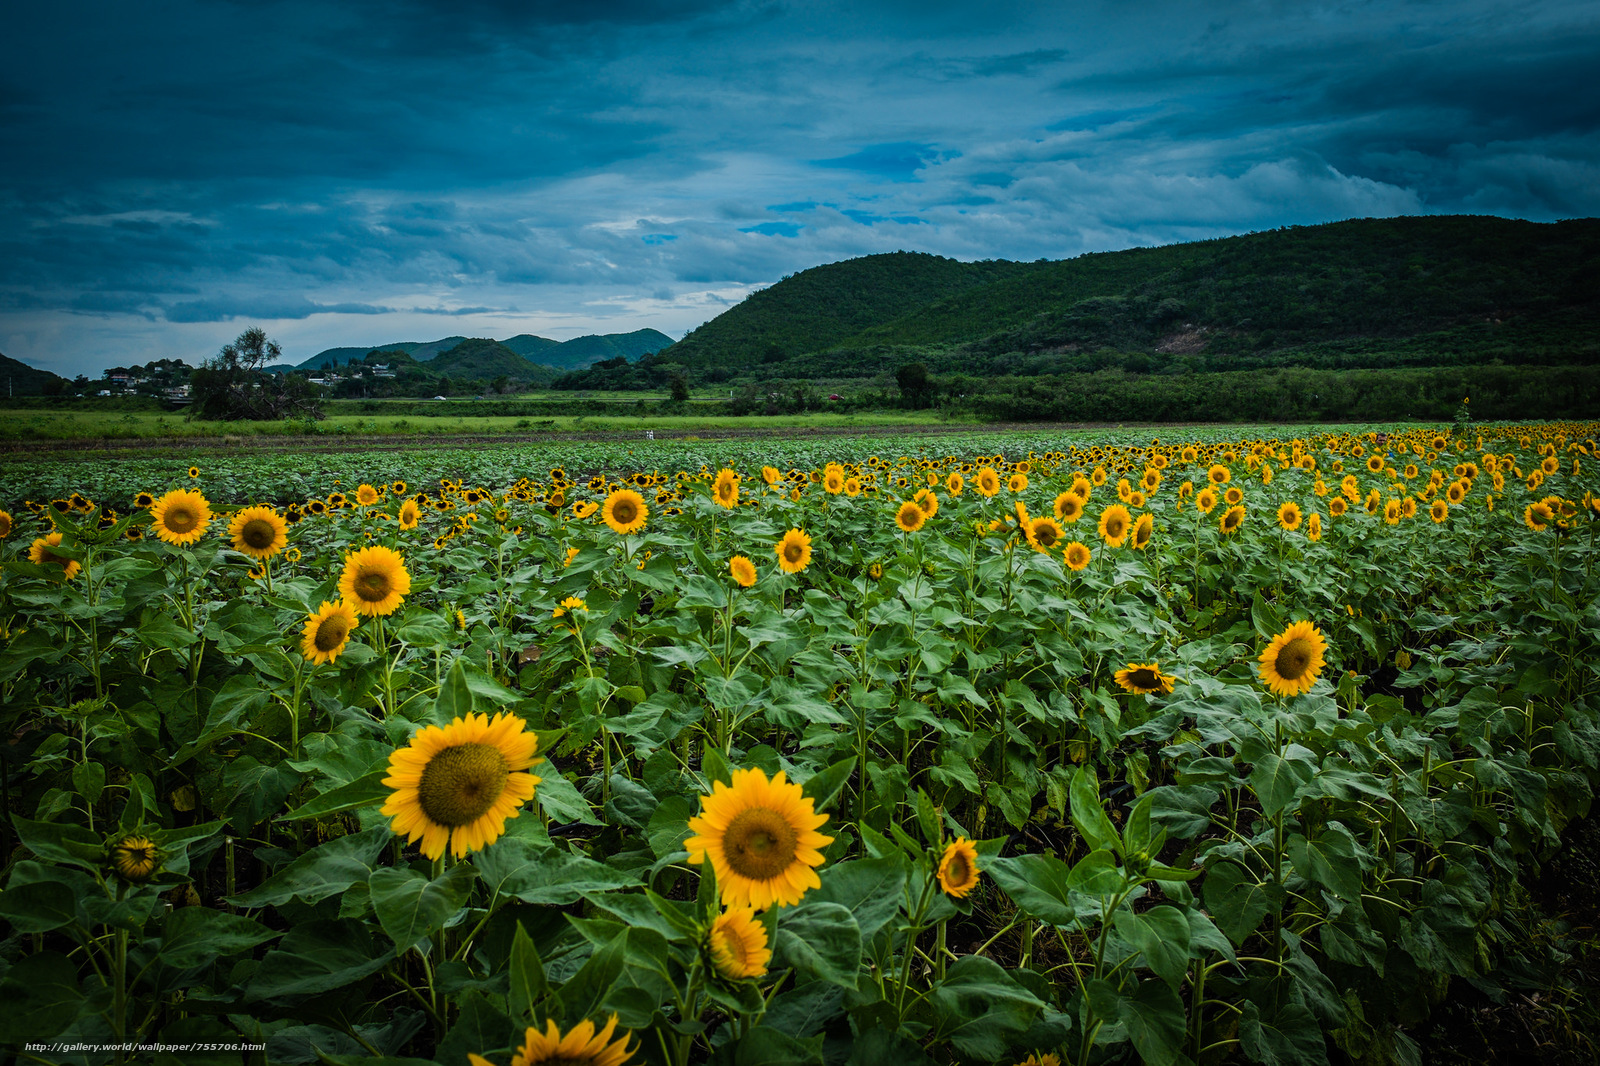 sunset, field, flowers, sunflowers, landscape